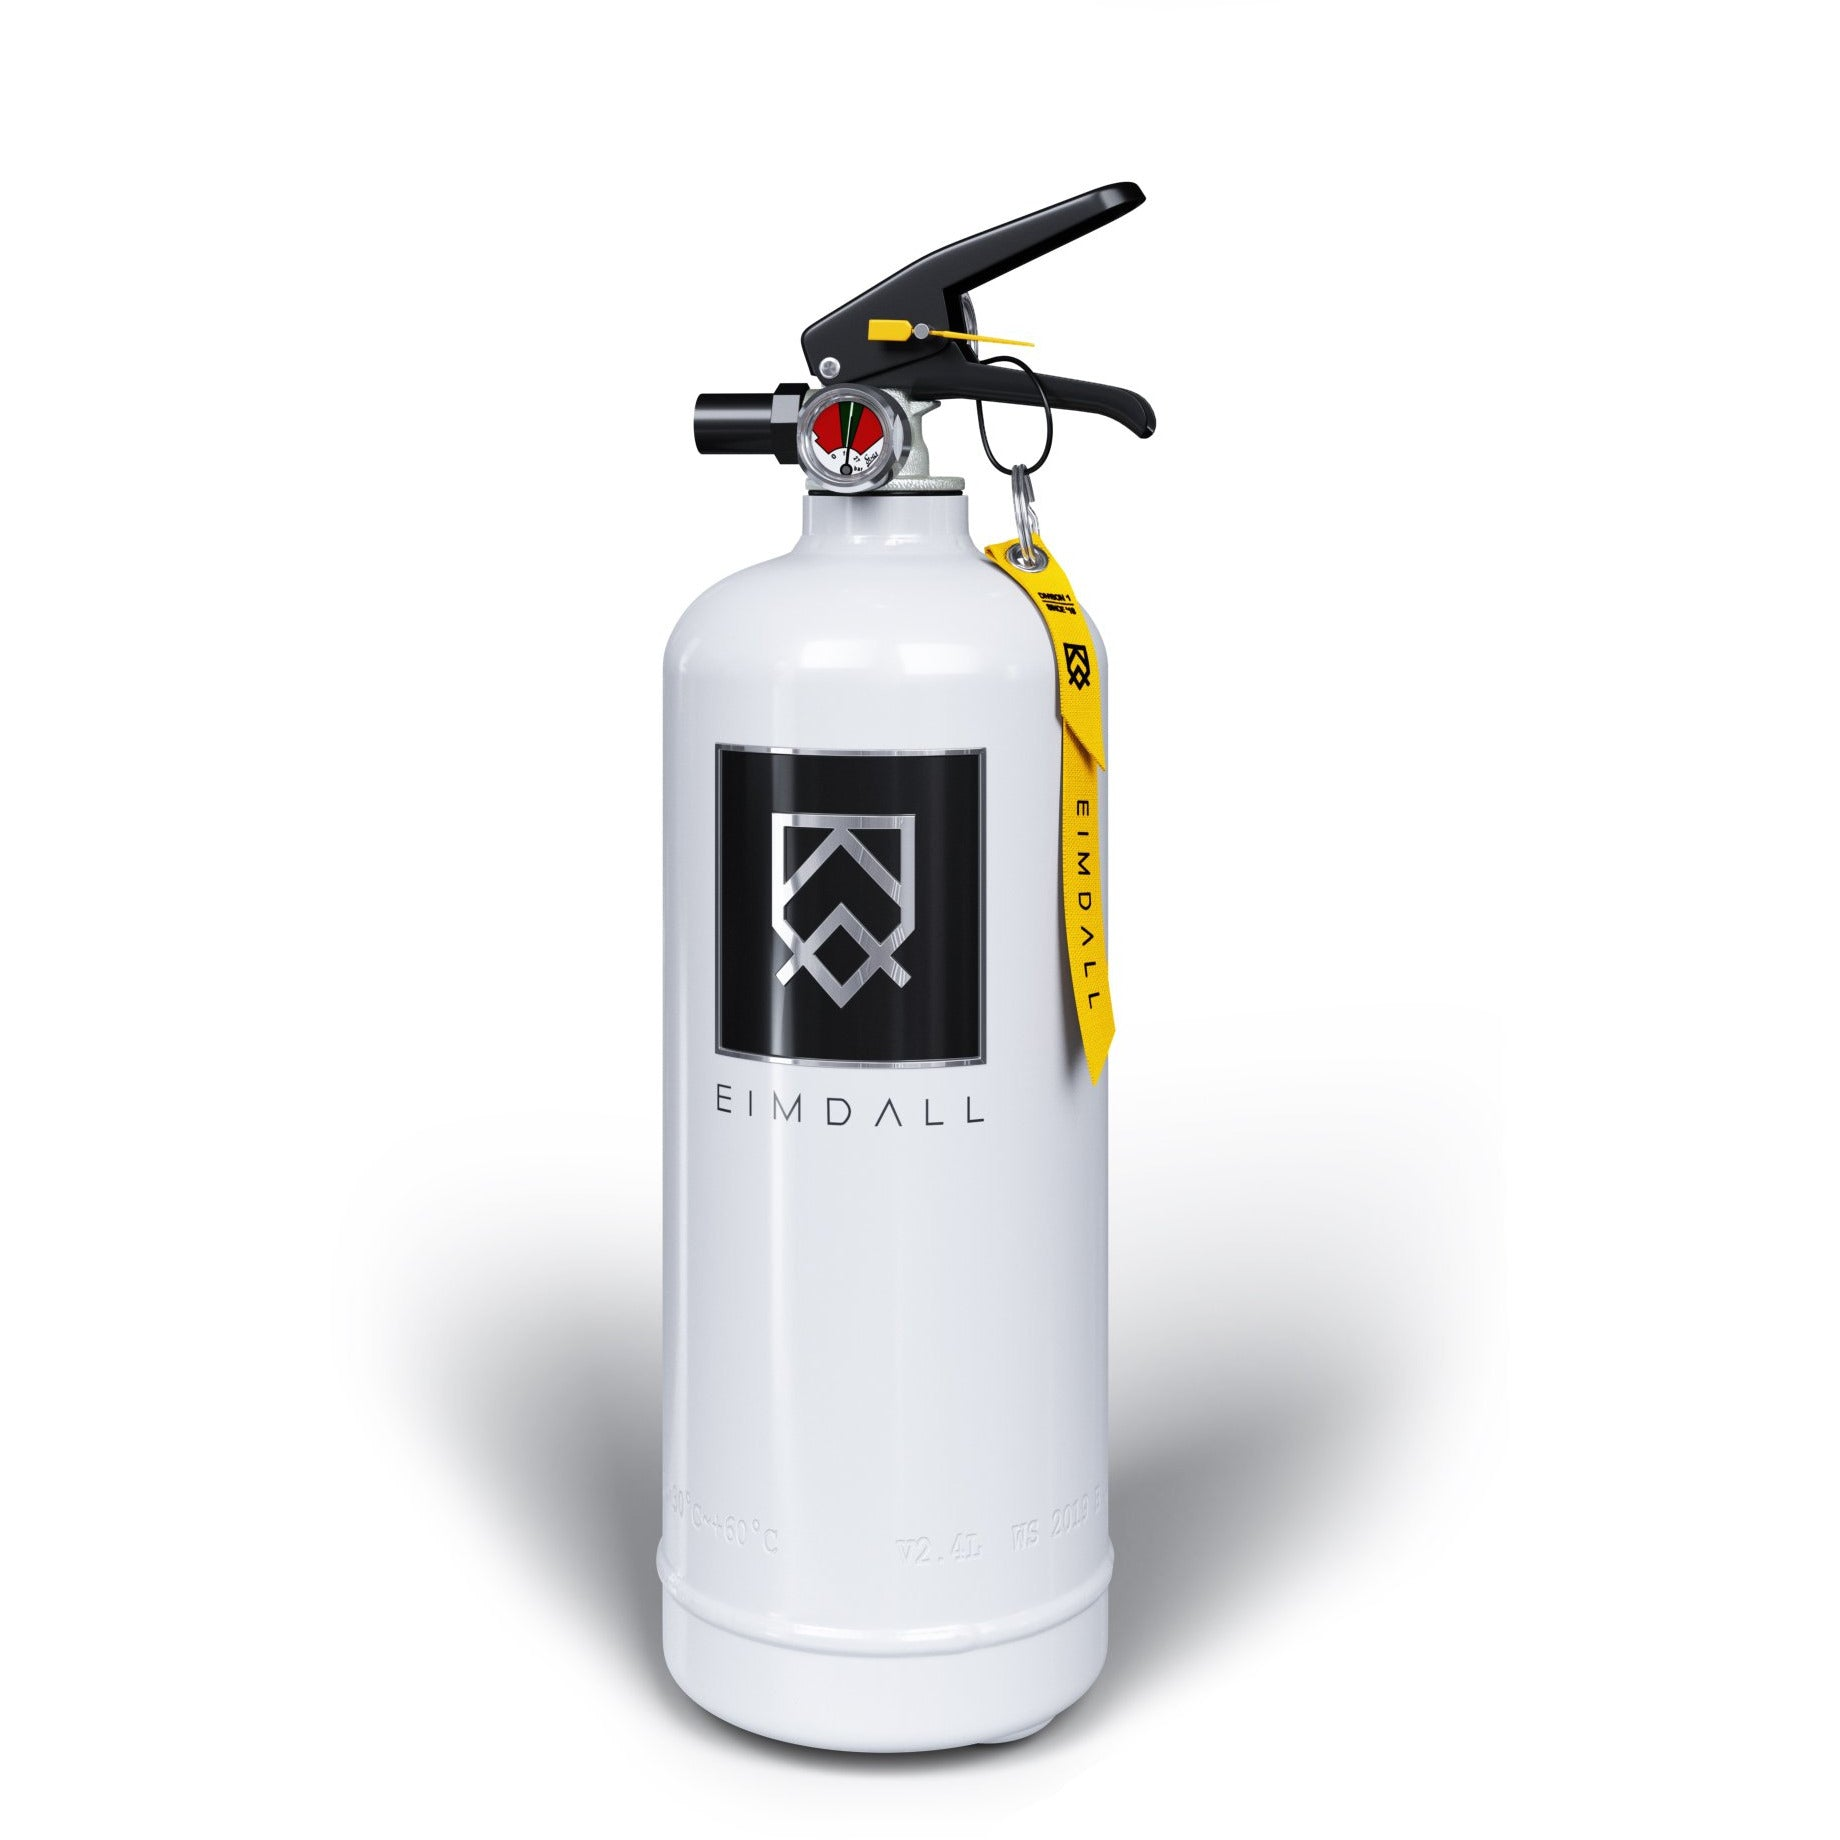 FREJA - White Eimdall 2 kg Design Fire Extinguisher